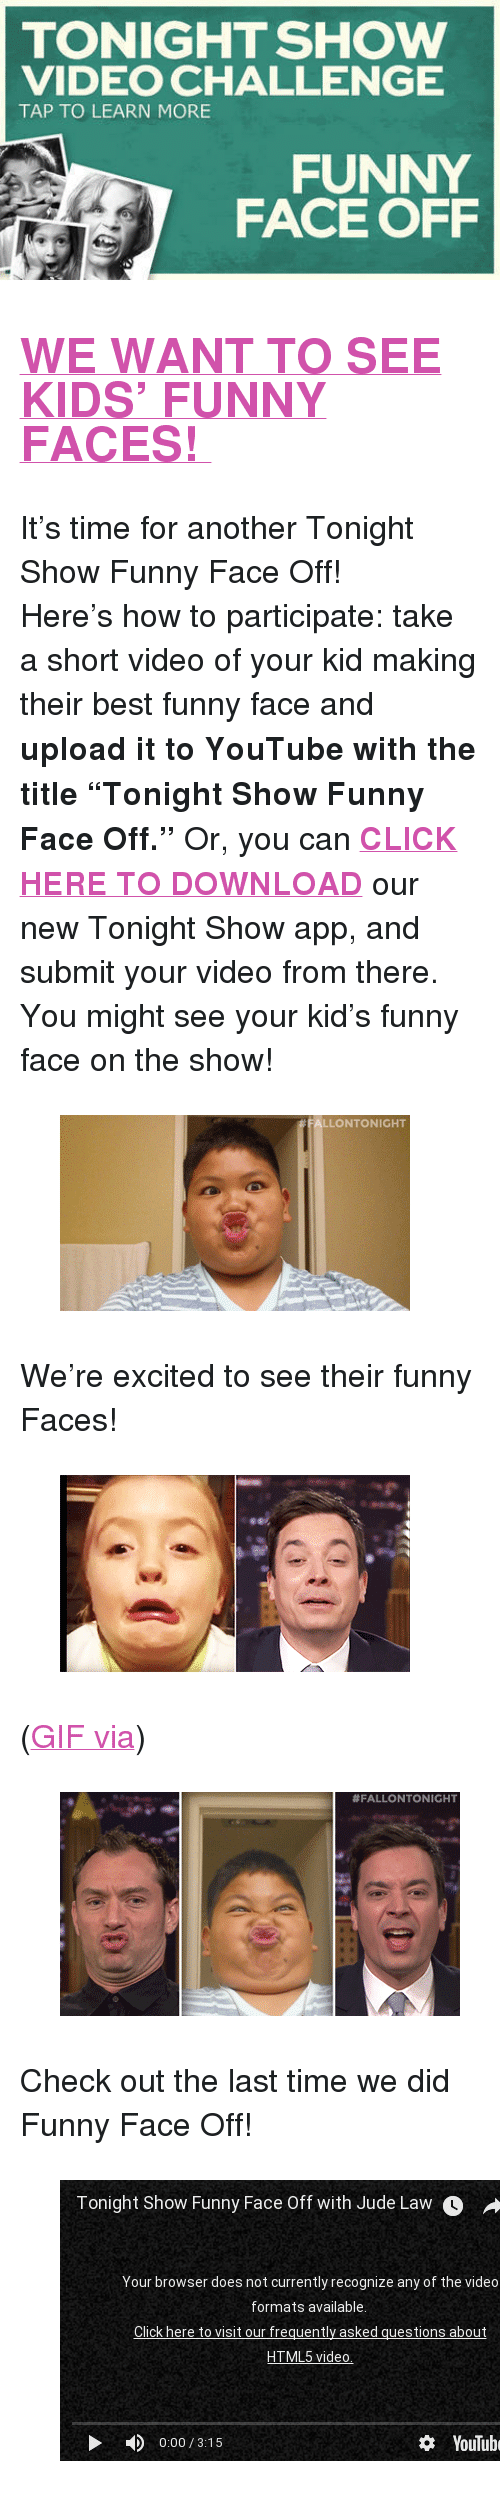 """funny face: TONIGHT SHOW  VIDEO CHALLENGE  TAP TO LEARN MORE  FUNNY  FACE OFF <h2><b><a href=""""http://www.nbc.com/the-tonight-show/blogs/3121"""" target=""""_blank"""">WE WANT TO SEE KIDS' FUNNY FACES!</a></b></h2><p>It's time for another Tonight Show Funny Face Off!</p><p>Here's how to participate: take a short video of your kid making their best funny face and <b>upload it to YouTube with the title """"Tonight Show Funny Face Off.""""</b> Or, you can <b><a href=""""http://www.nbc.com/the-tonight-show/blogs/1086"""" target=""""_blank"""">CLICK HERE TO DOWNLOAD</a></b> our new Tonight Show app, and submit your video from there. You might see your kid's funny face on the show!</p><figure data-orig-width=""""350"""" data-orig-height=""""196""""><img src=""""https://78.media.tumblr.com/fea73ad57acb250b718b5f3d15da086d/tumblr_inline_nlitsstbOT1qgt12i.gif"""" alt=""""image"""" data-orig-width=""""350"""" data-orig-height=""""196""""/></figure><p>We're excited to see their funny Faces!</p><figure data-orig-width=""""350"""" data-orig-height=""""197""""><img src=""""https://78.media.tumblr.com/96d01537f1b13eda8008628d40742e87/tumblr_inline_nlrwj2et9v1qgt12i.gif"""" alt=""""image"""" data-orig-width=""""350"""" data-orig-height=""""197""""/></figure><p>(<a href=""""http://jfallonlove.tumblr.com/post/80750891924"""" target=""""_blank"""">GIF via</a>)</p><figure data-orig-width=""""400"""" data-orig-height=""""224""""><img src=""""https://78.media.tumblr.com/daadc7d7137e90d2bdc7b3f60b7f0230/tumblr_inline_nlitt0yZiD1qgt12i.gif"""" alt=""""image"""" data-orig-width=""""400"""" data-orig-height=""""224""""/></figure><p>Check out the last time we did Funny Face Off!</p><figure class=""""tmblr-embed"""" data-provider=""""youtube"""" data-orig-width=""""540"""" data-orig-height=""""304"""" data-url=""""https%3A%2F%2Fwww.youtube.com%2Fwatch%3Fv%3DFlqMnDUtfOQ""""><iframe width=""""500"""" height=""""281"""" id=""""youtube_iframe"""" src=""""https://www.youtube.com/embed/FlqMnDUtfOQ?feature=oembed&amp;enablejsapi=1&amp;origin=https://safe.txmblr.com&amp;wmode=opaque"""" frameborder=""""0"""" allowfullscreen=""""""""></iframe></figure>"""